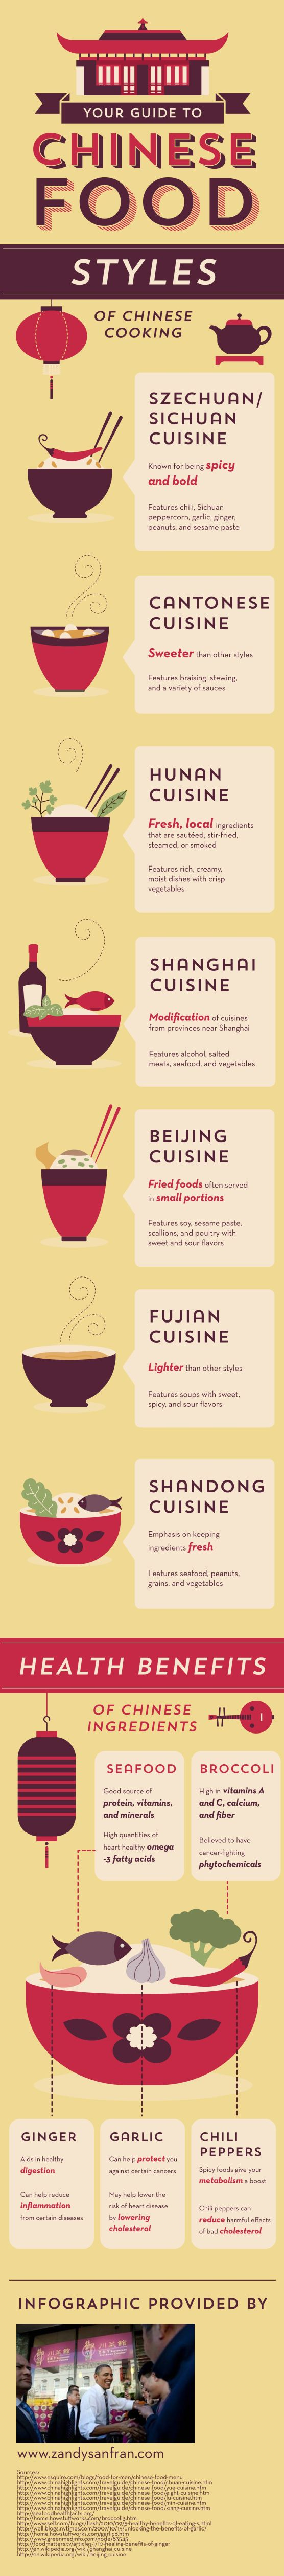 Dailygraphic  Your Guide To Chinese Food [infographic]   Schwartzbrown@gmail